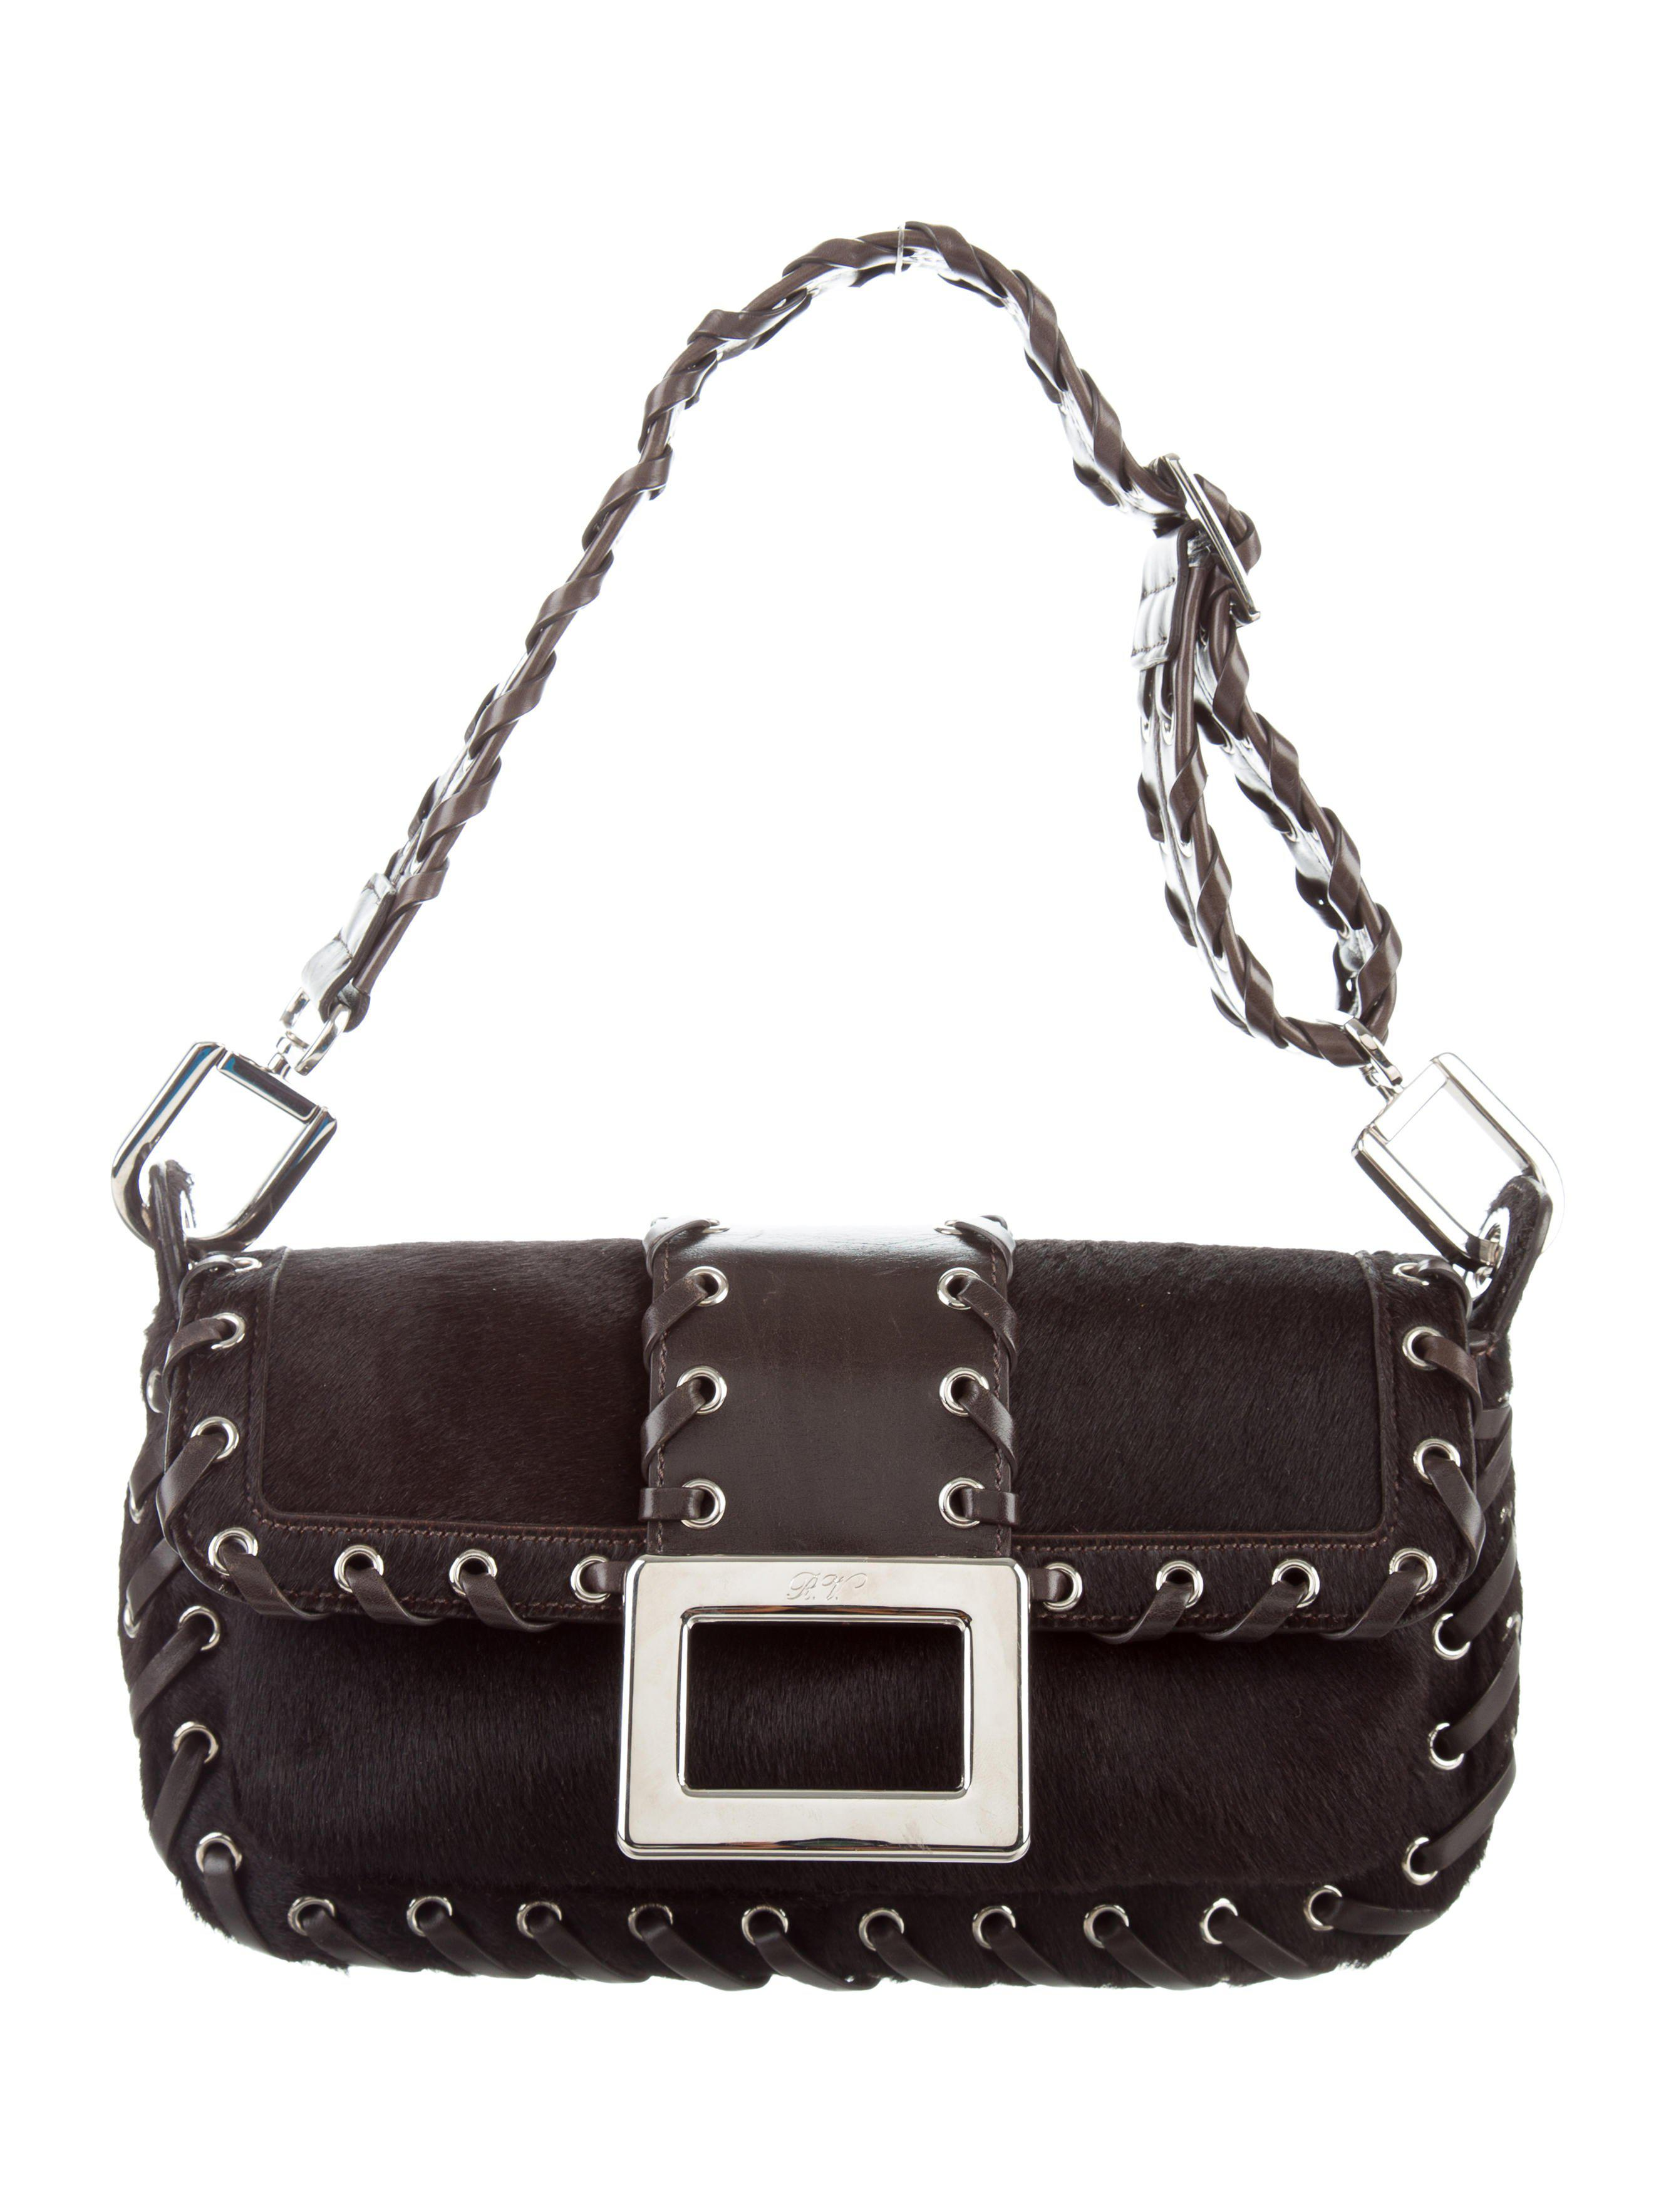 261711dea3 Lyst - Roger Vivier Belle Sauvage Bag Silver in Metallic